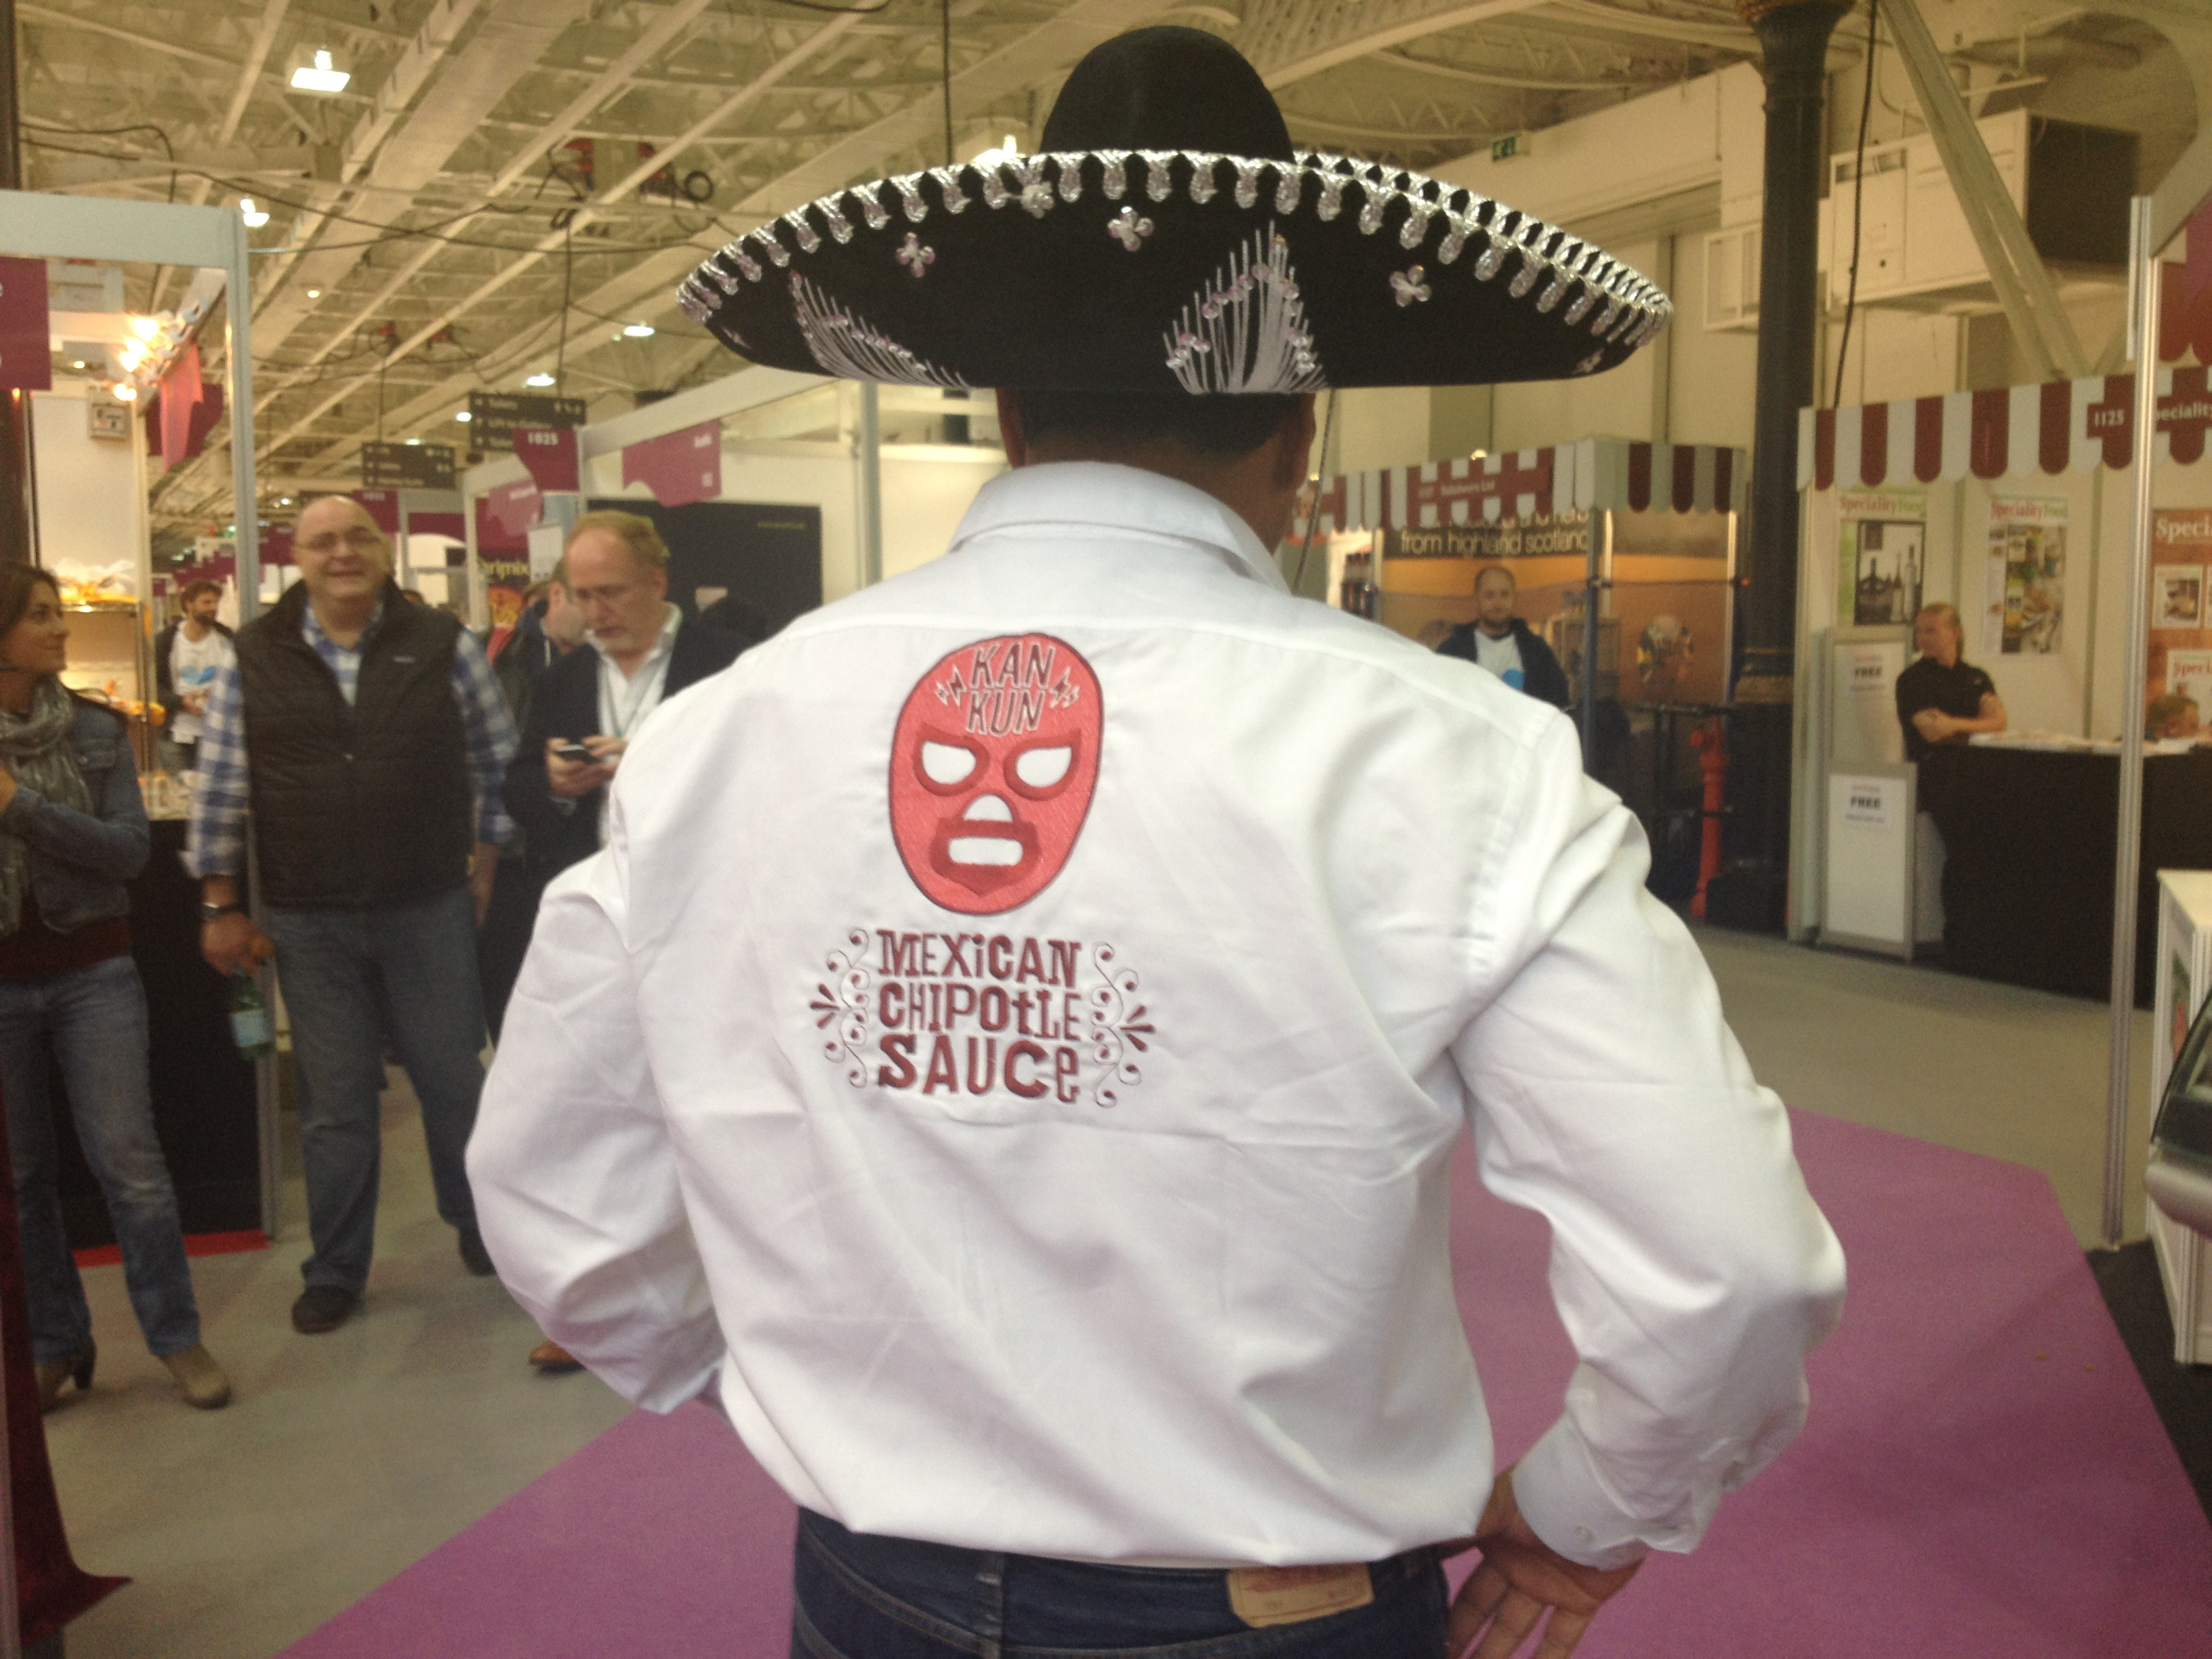 Kankun Sauce at the Speciality & Fine Food Fair 2013 – London Olympia